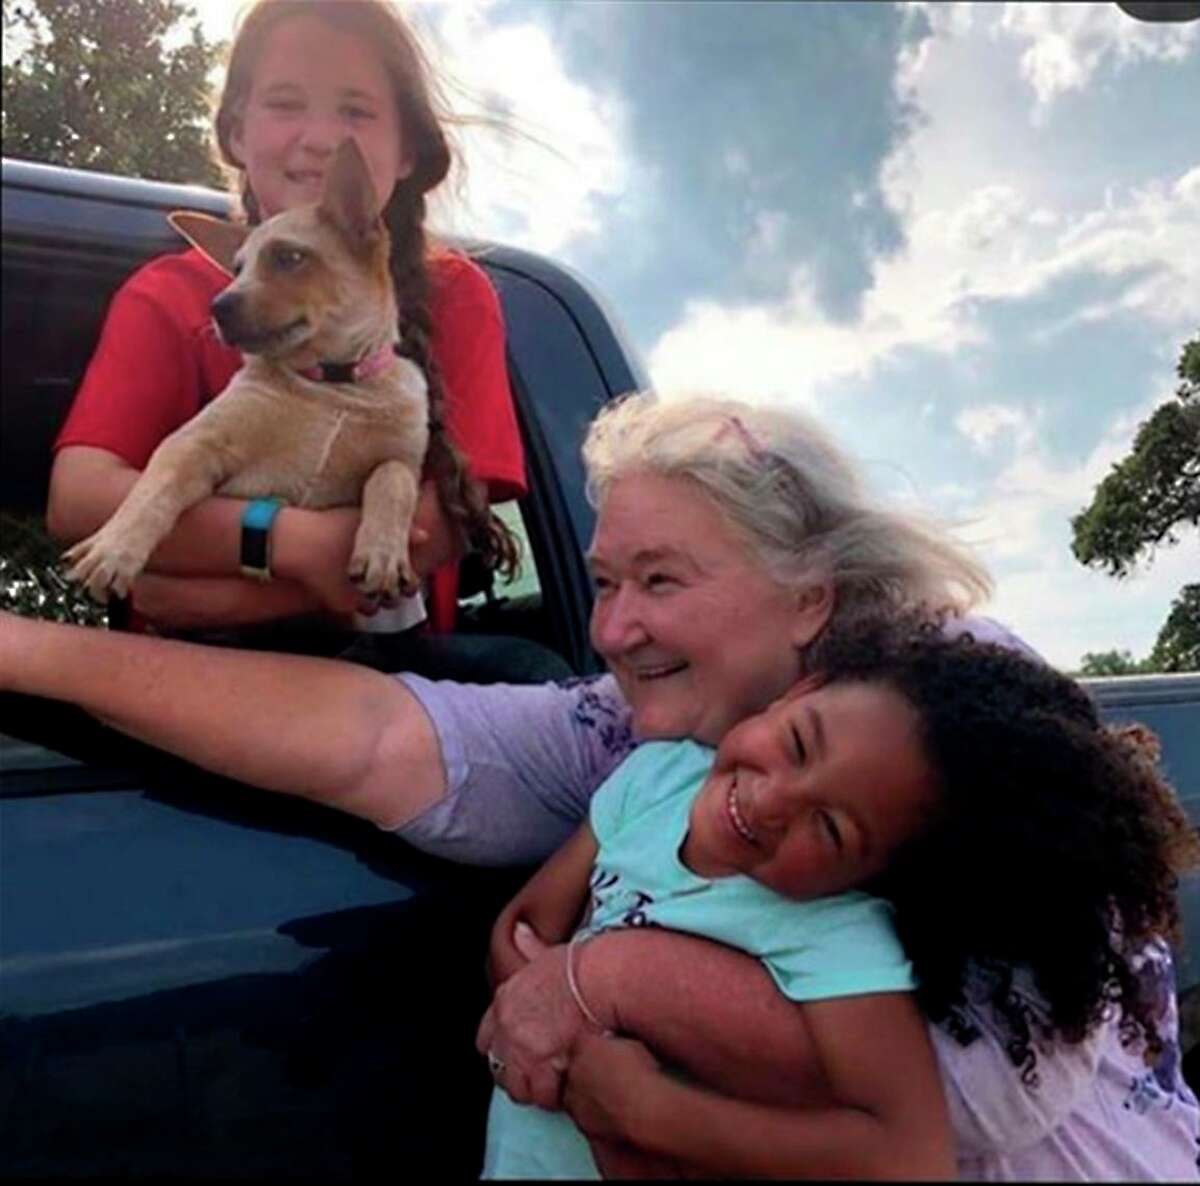 Cathy Peeler, who died Monday from COVID-19, sharing a fun moment with two of her granddaughters, Nora (left) and Serenity.